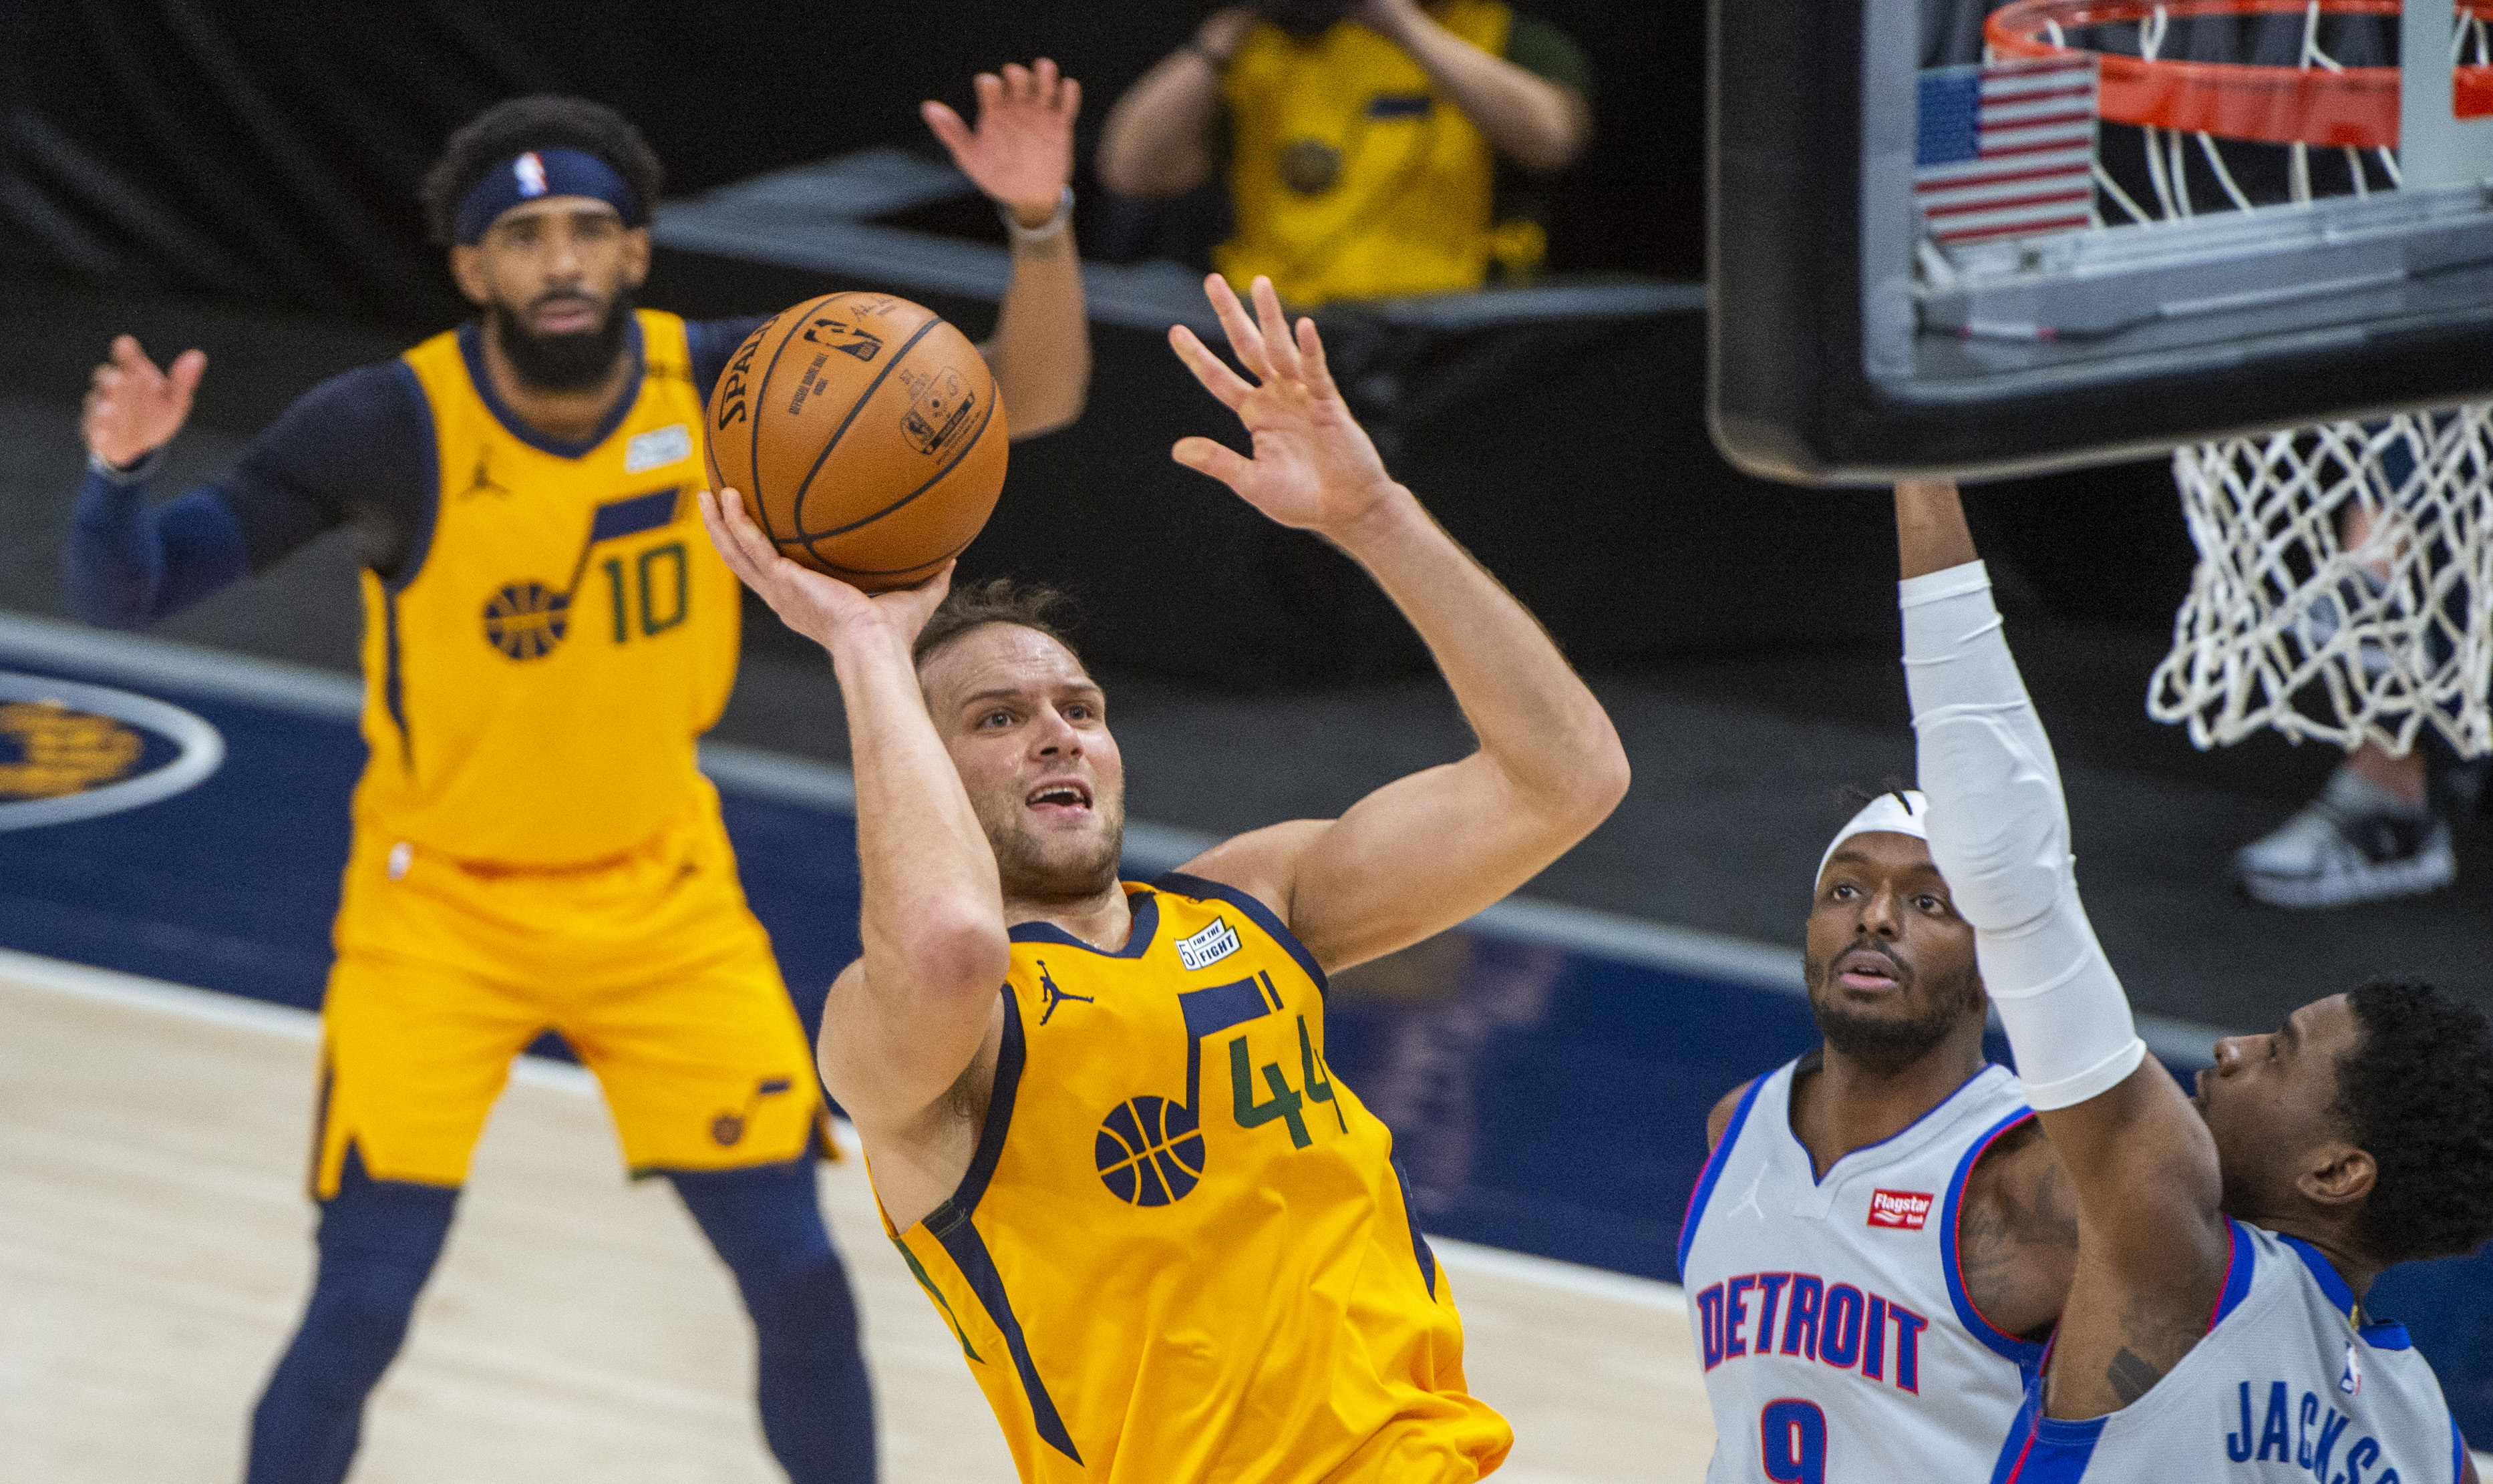 It's sloppy and closer than expected, but the Utah Jazz win again, beating Detroit  117-105